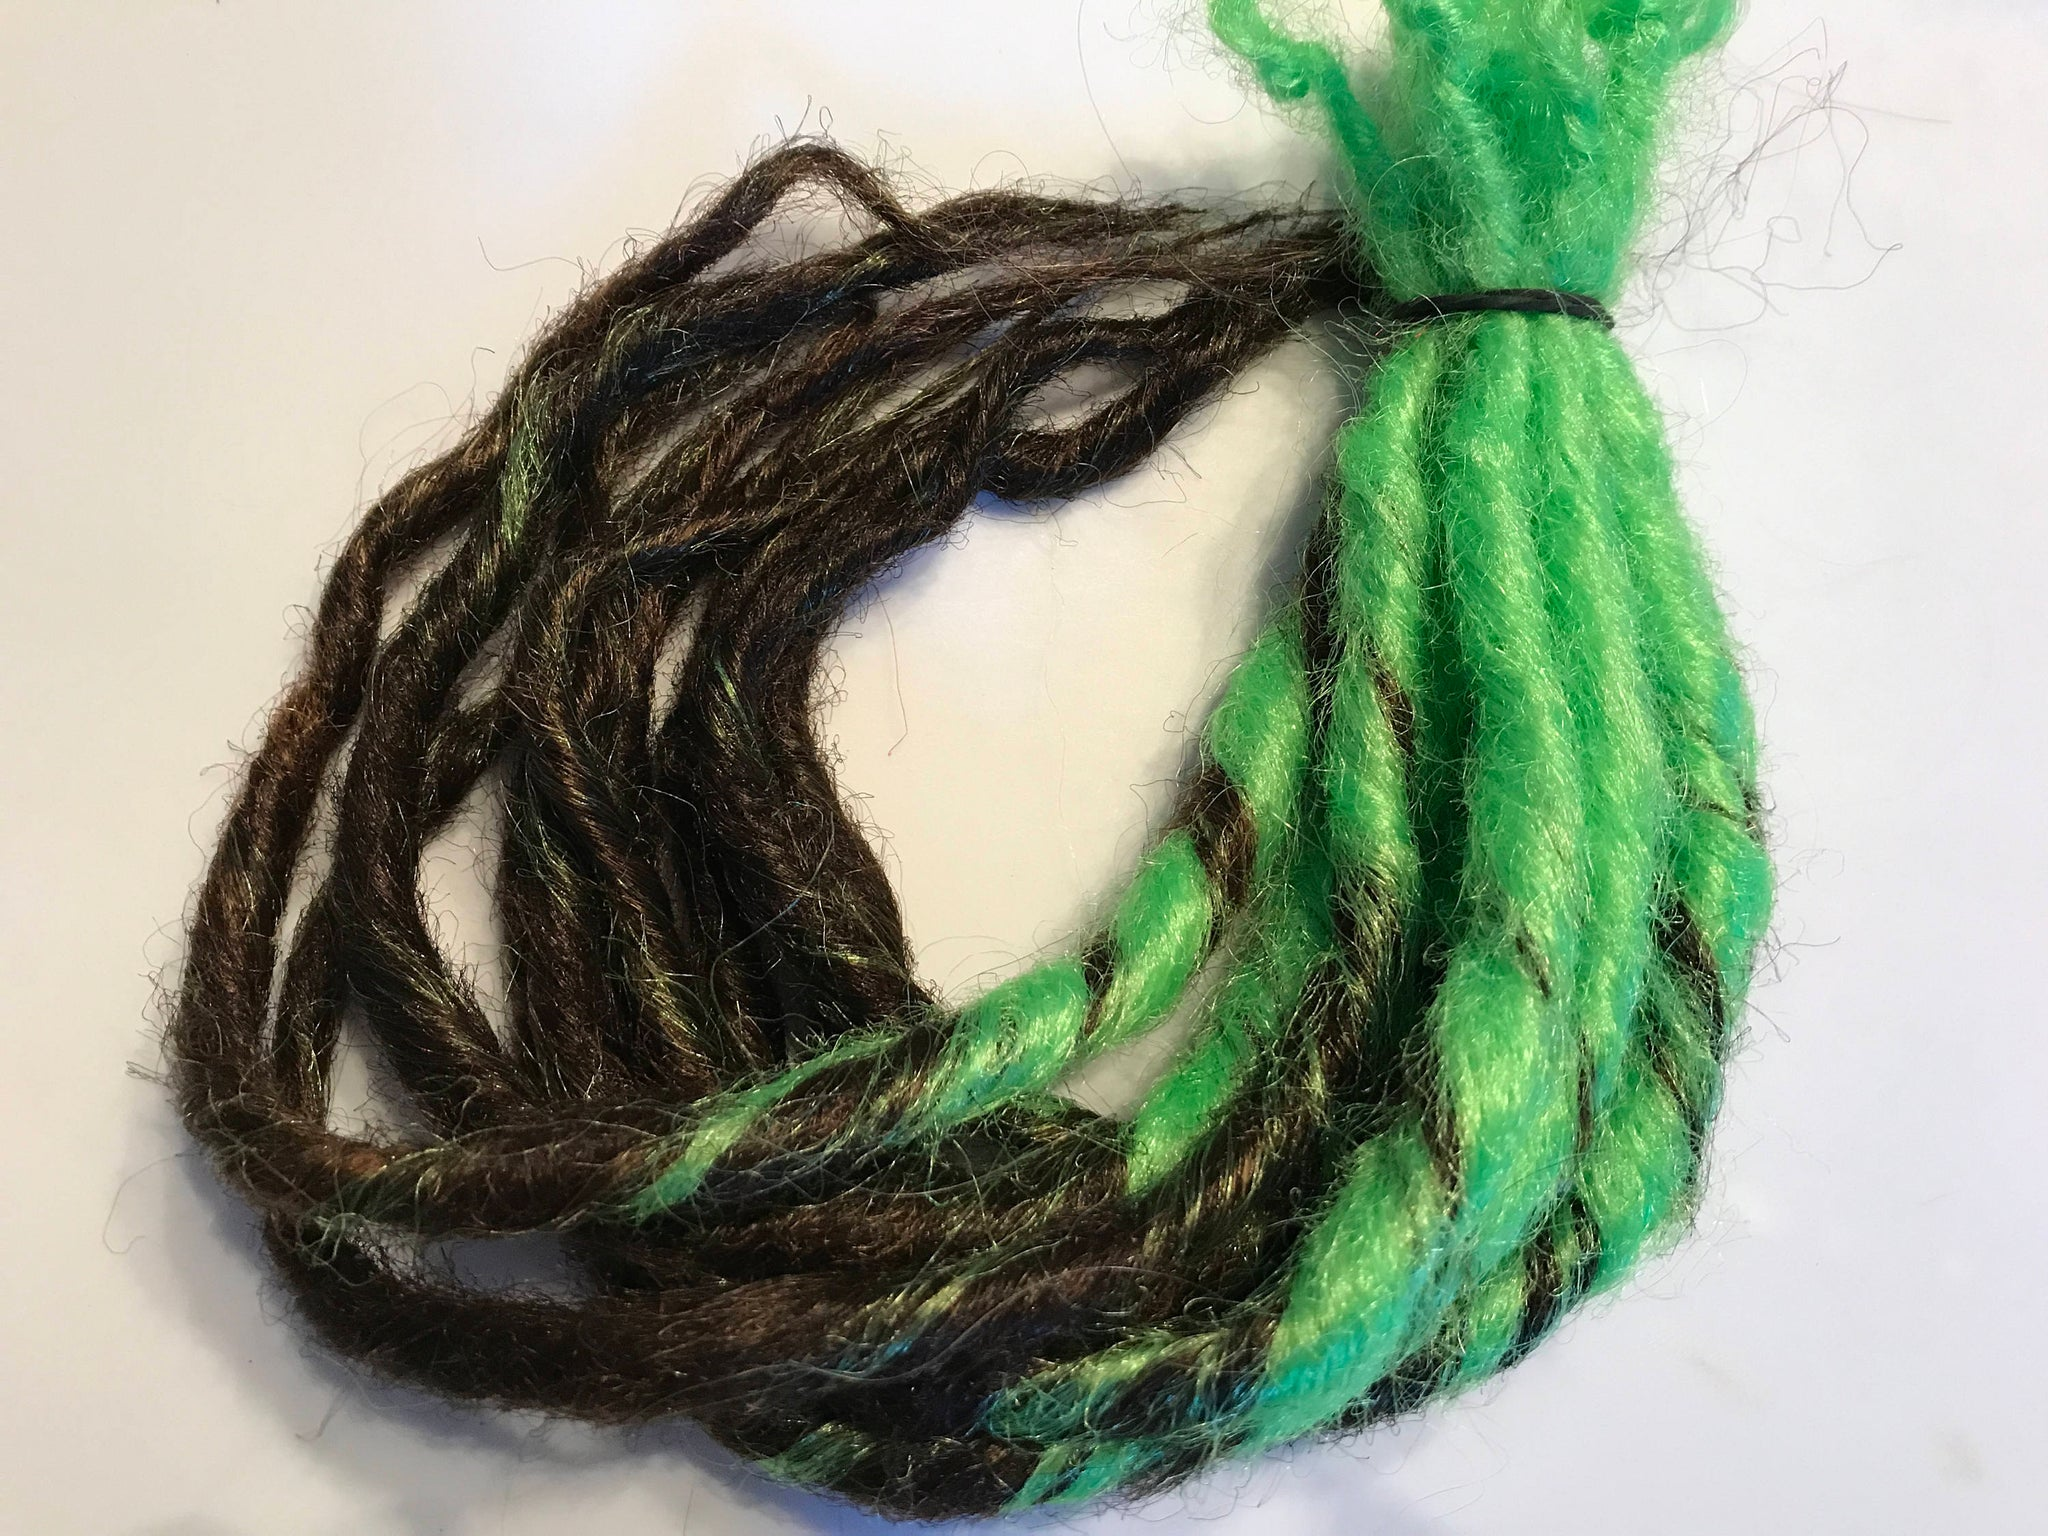 10 SE Synthetic Dreads Ombre Transitional Green Auburn Brown Dreadlock Hair Extensions Knotty